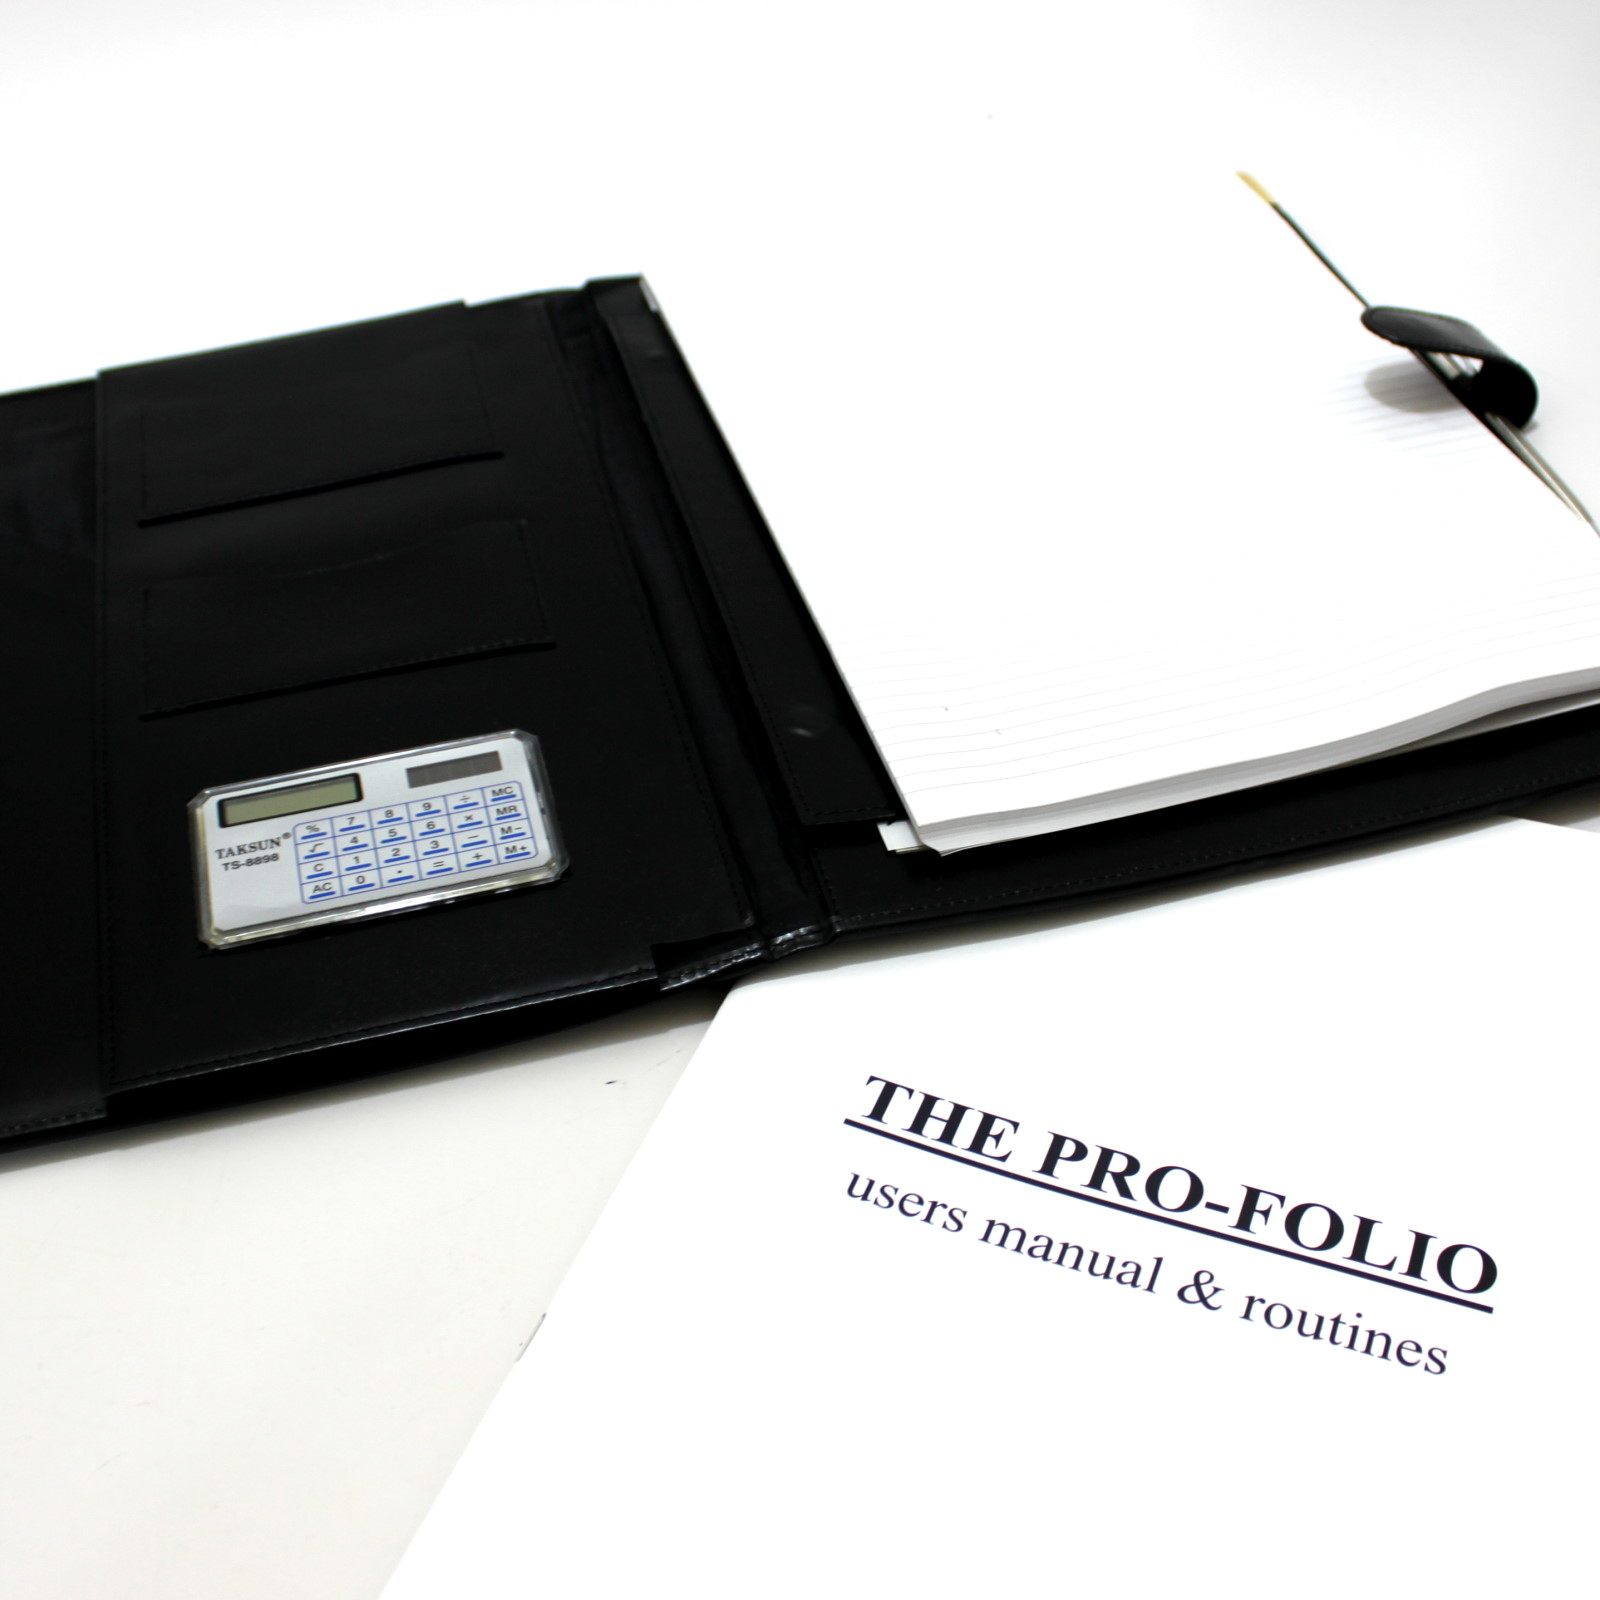 The Pro-folio by Andy Nyman